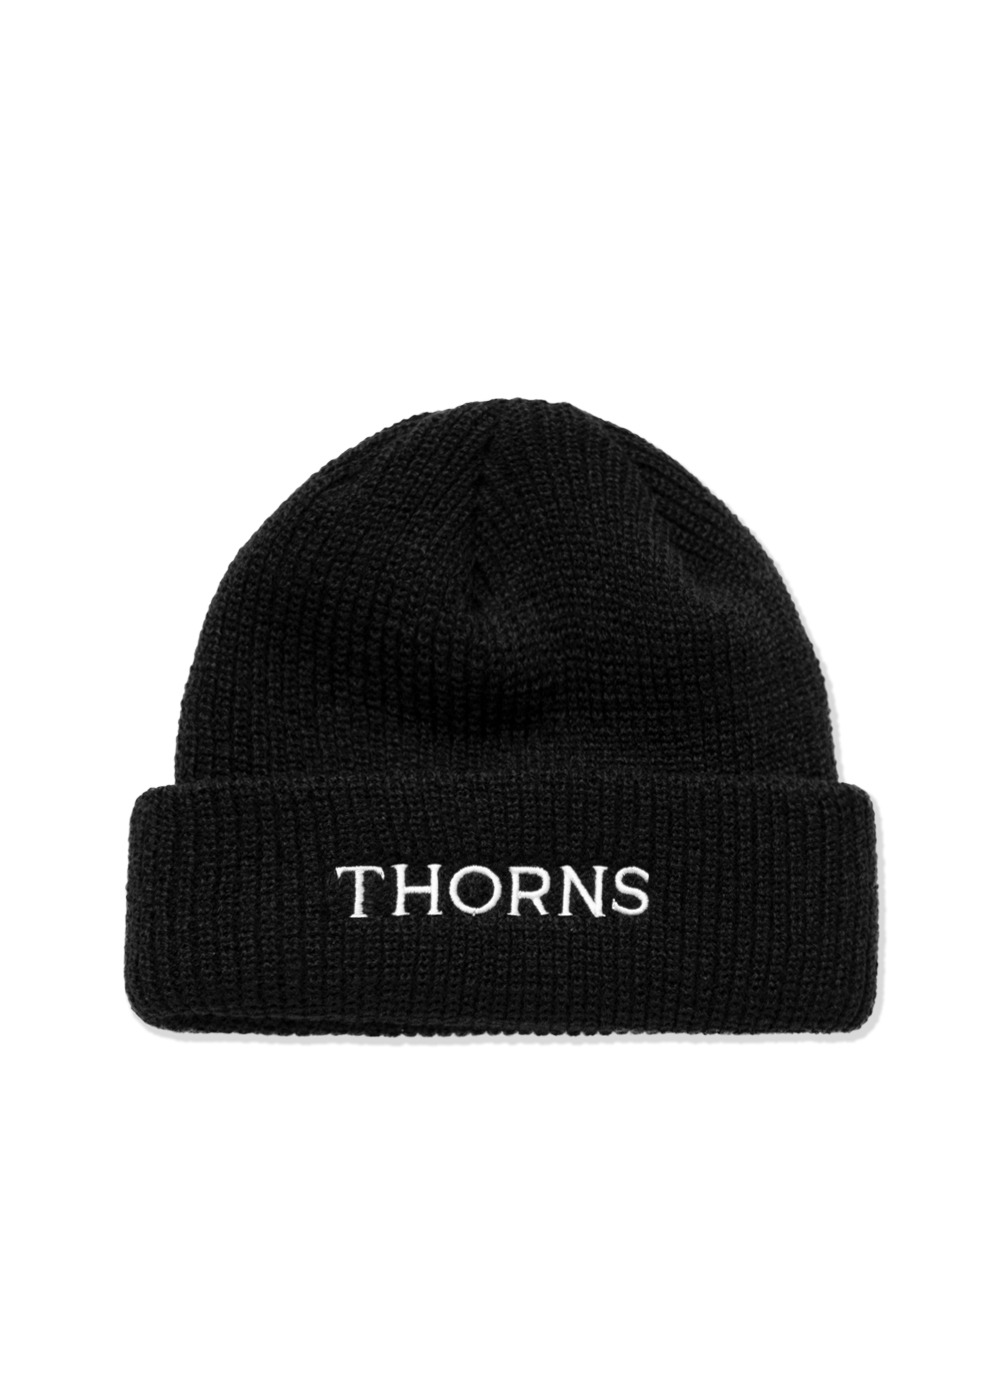 LMC THORNS SHORT BEANIE black